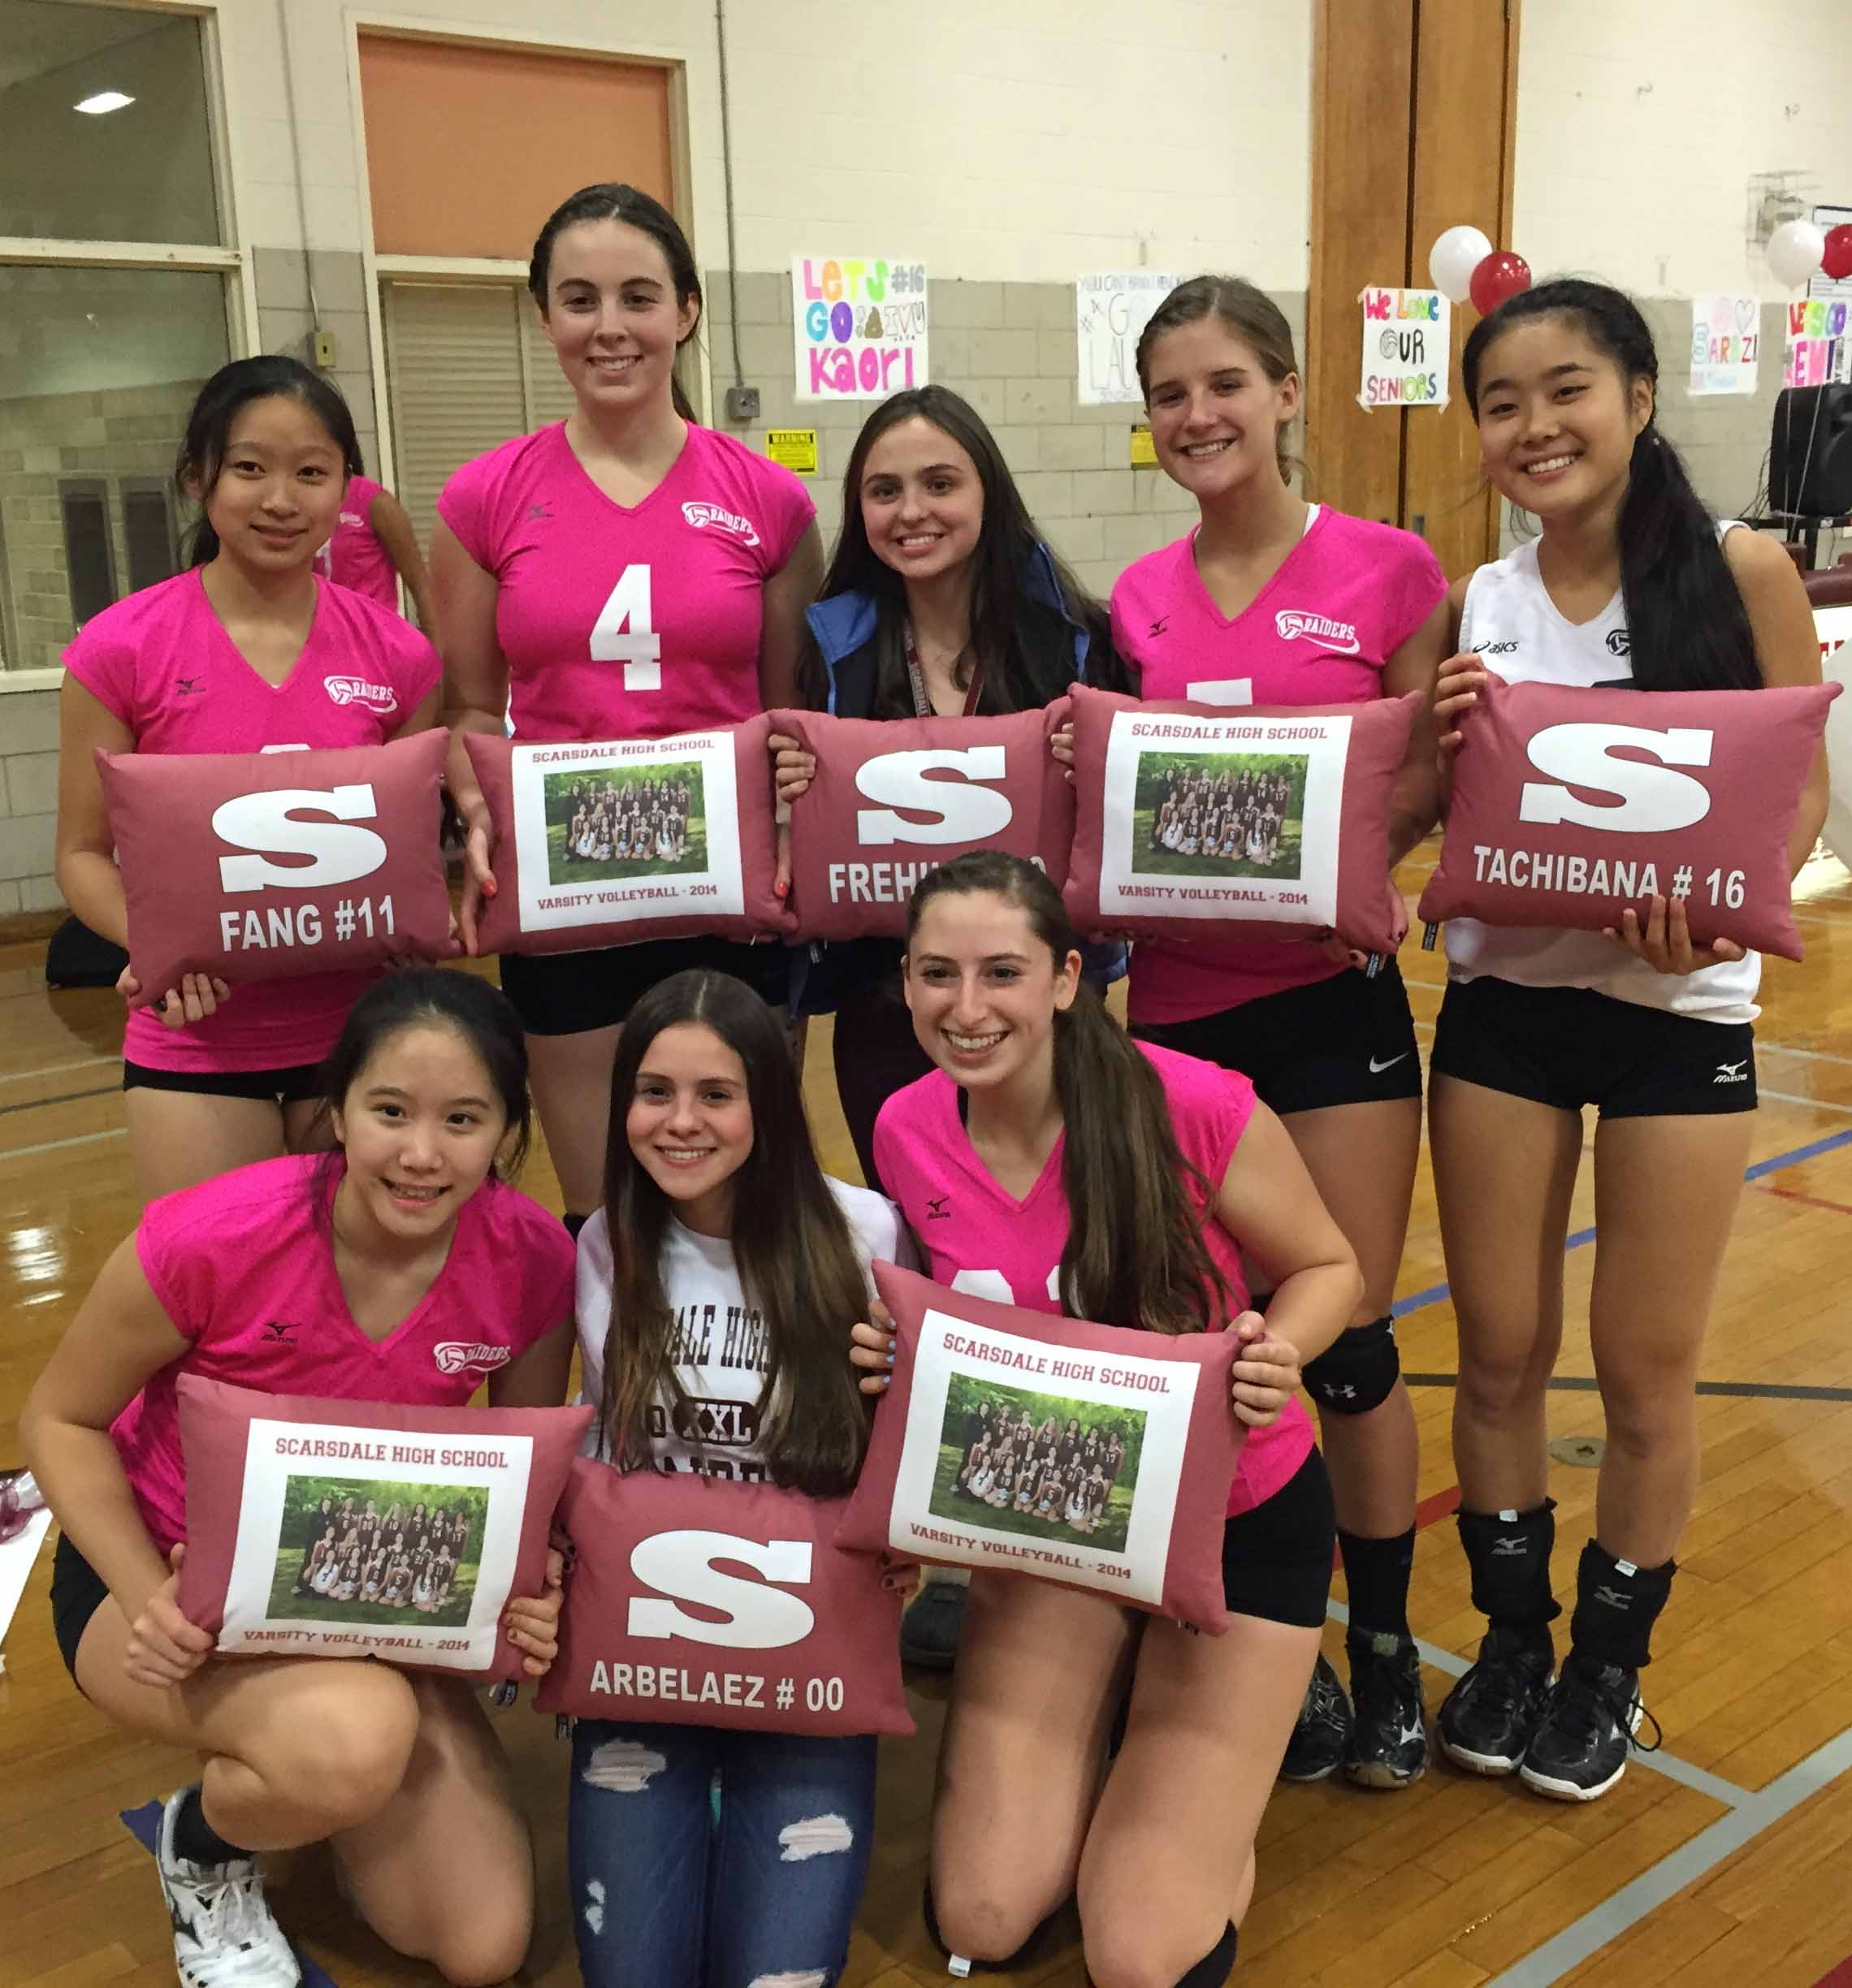 team-pillow-volleyball-IMG_4748-forweb.jpg